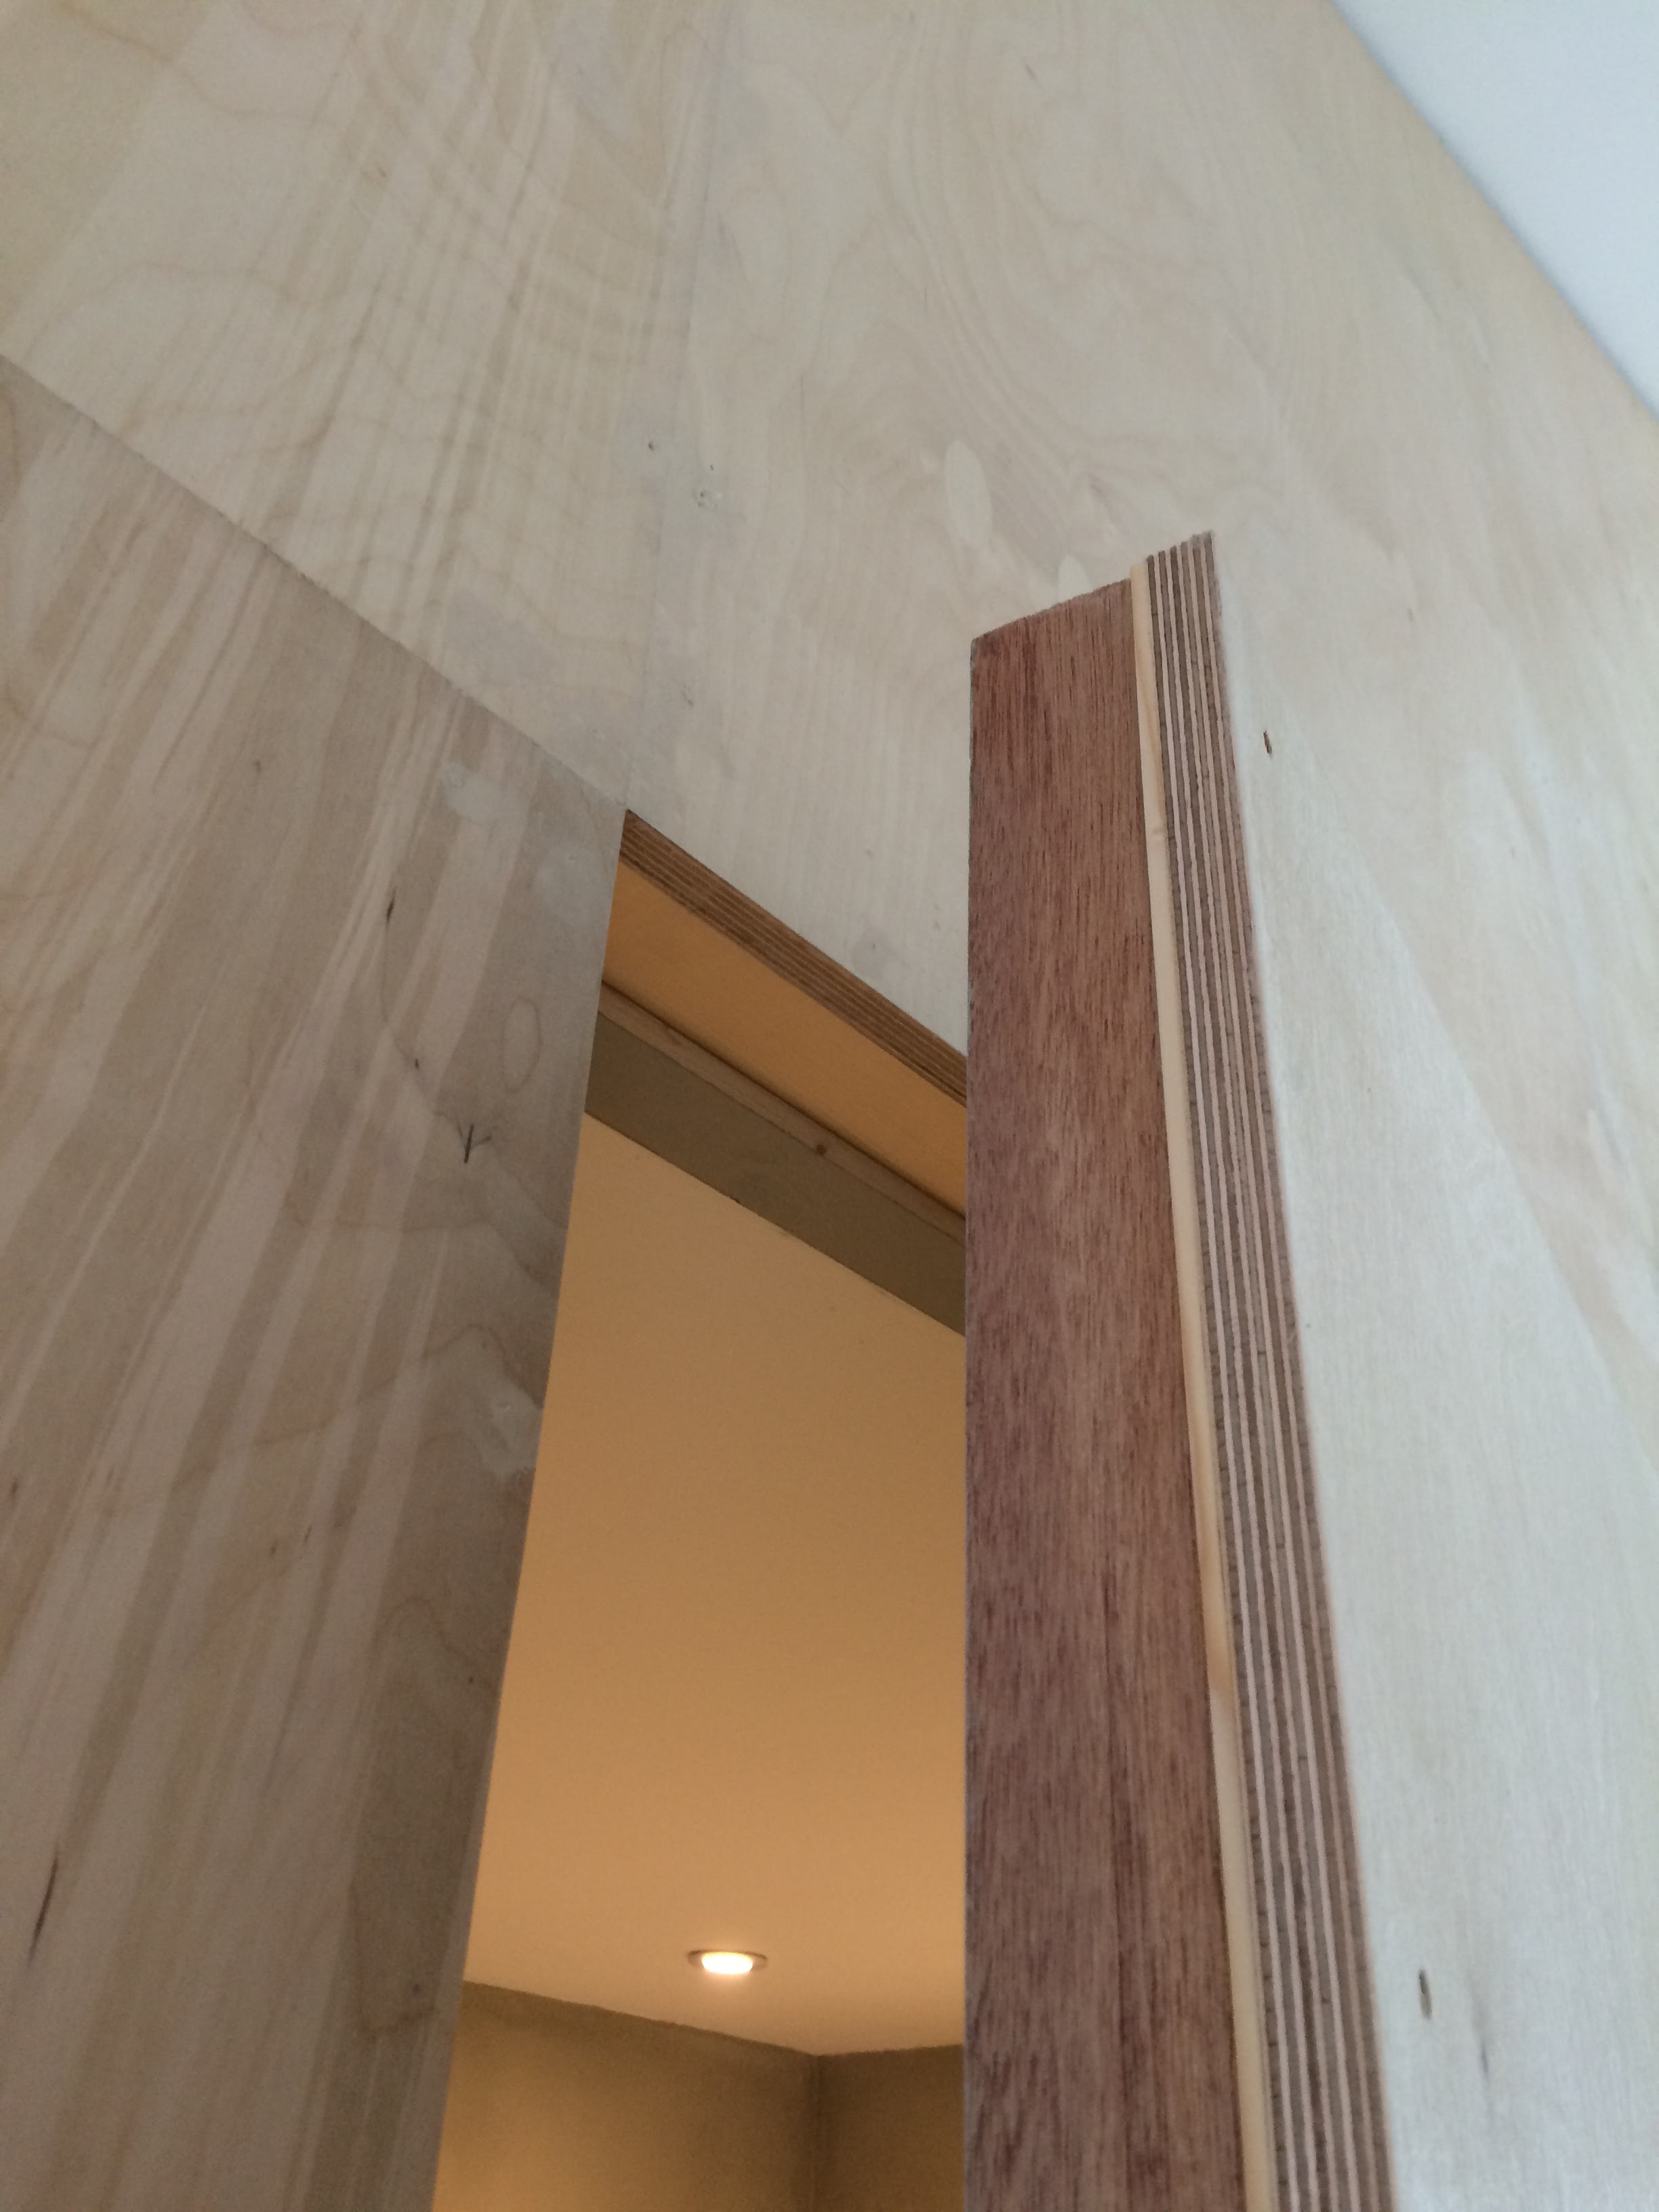 Ply door edge